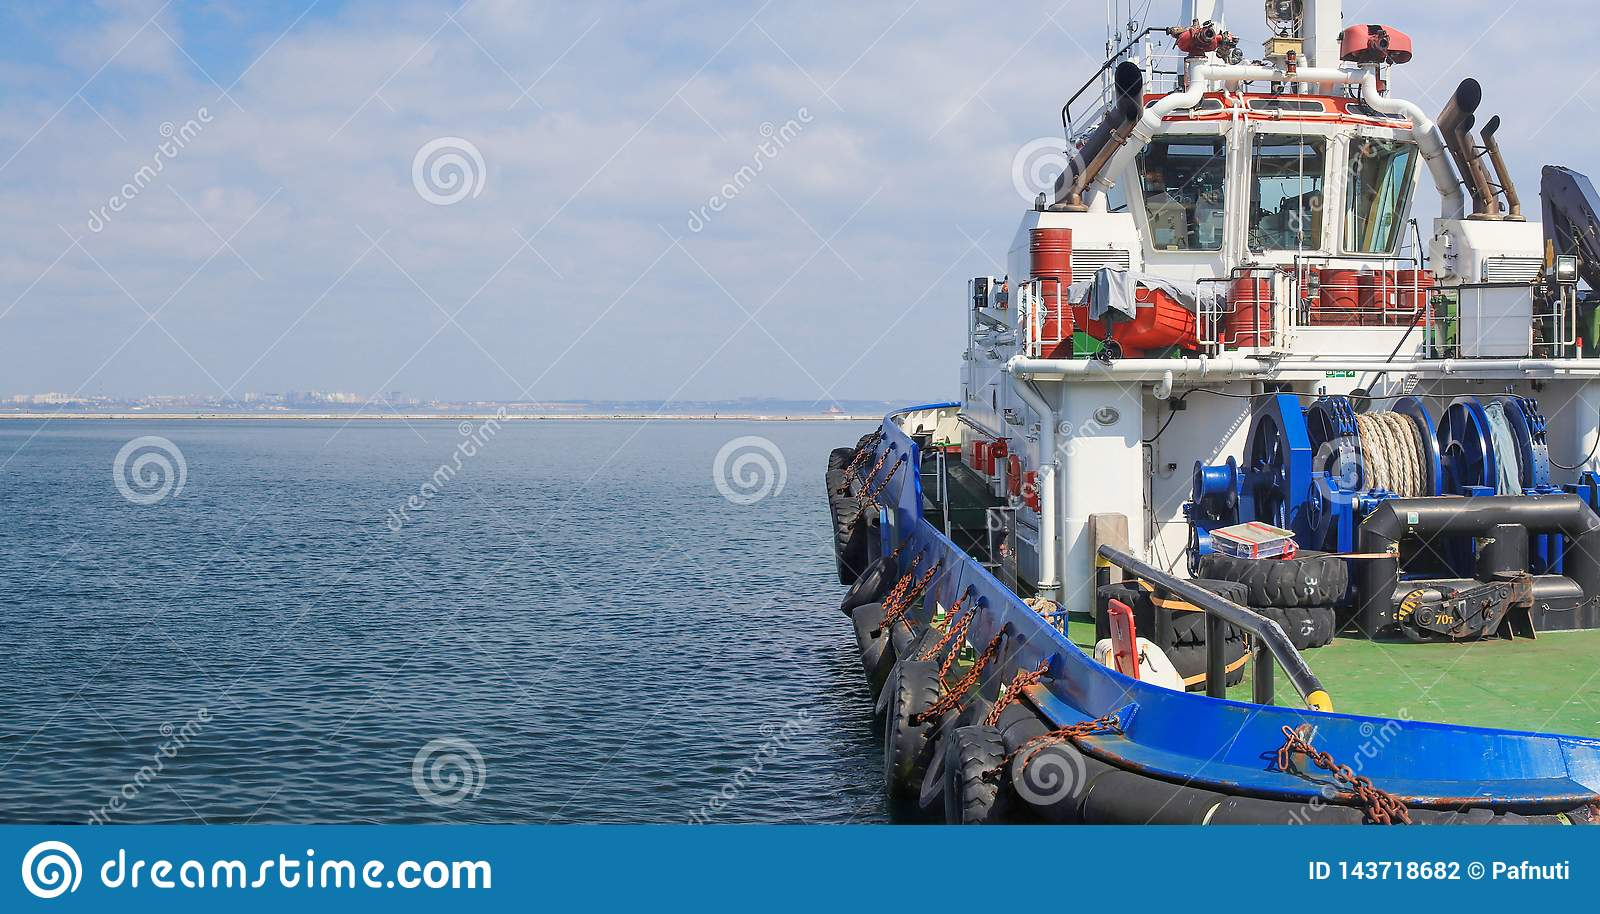 Close-up of a supply vessel transporting cargo